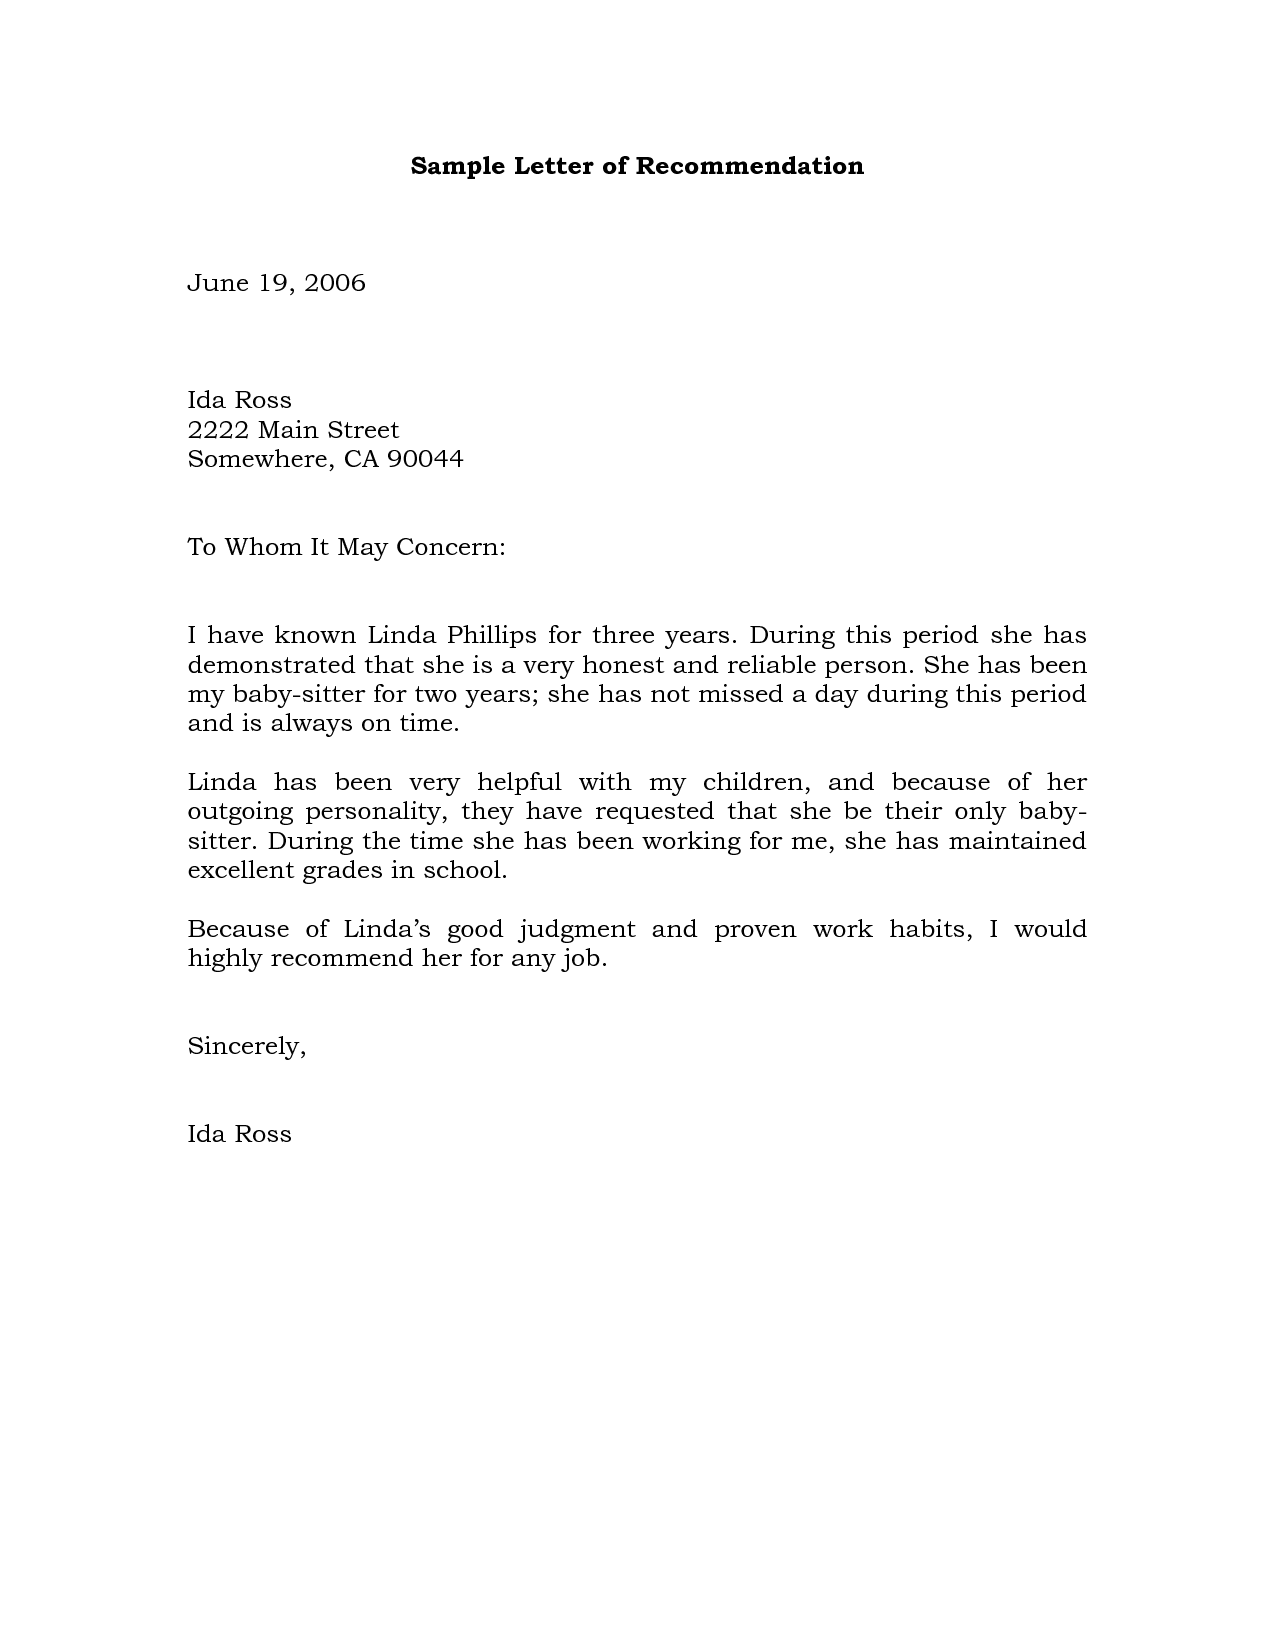 Sample Recommendation Letter Example  Free Recommendation Letters